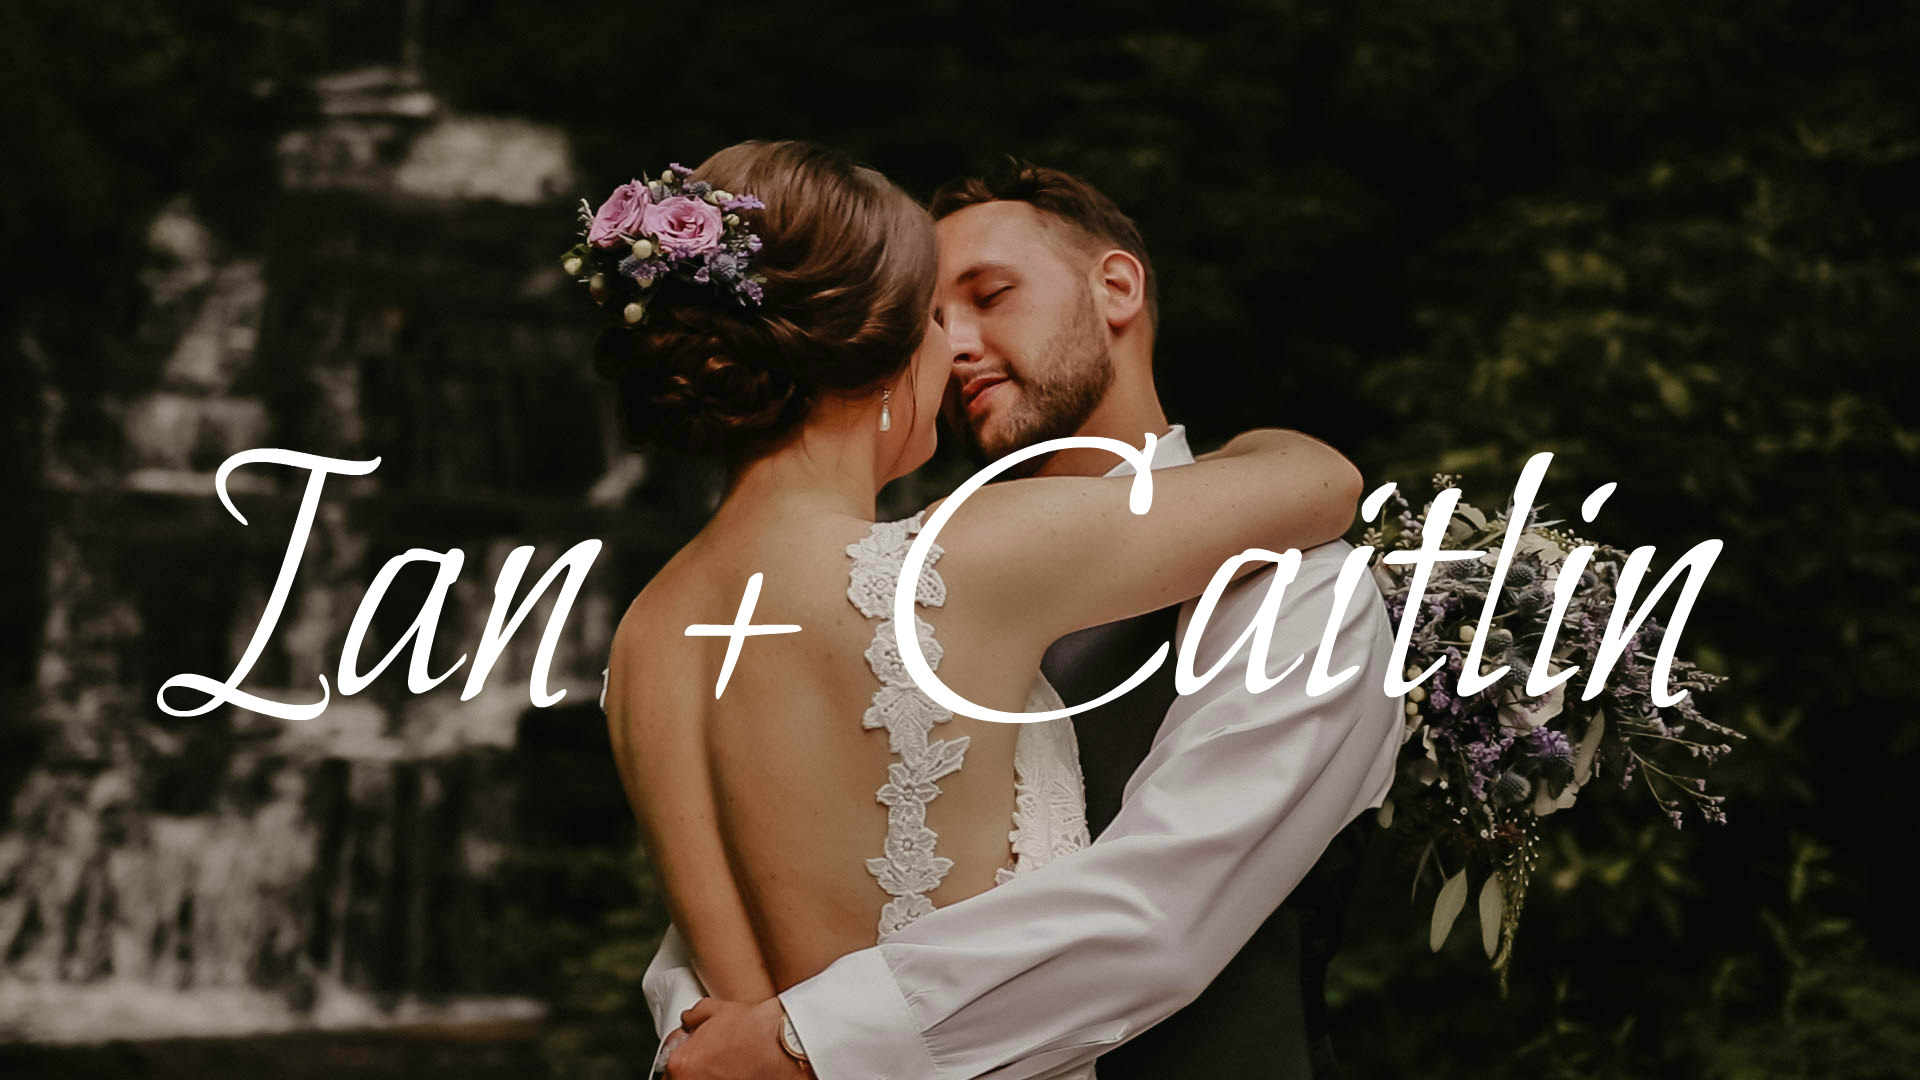 Caitlin + Ian | Greenville, South Carolina | Key Falls Inn